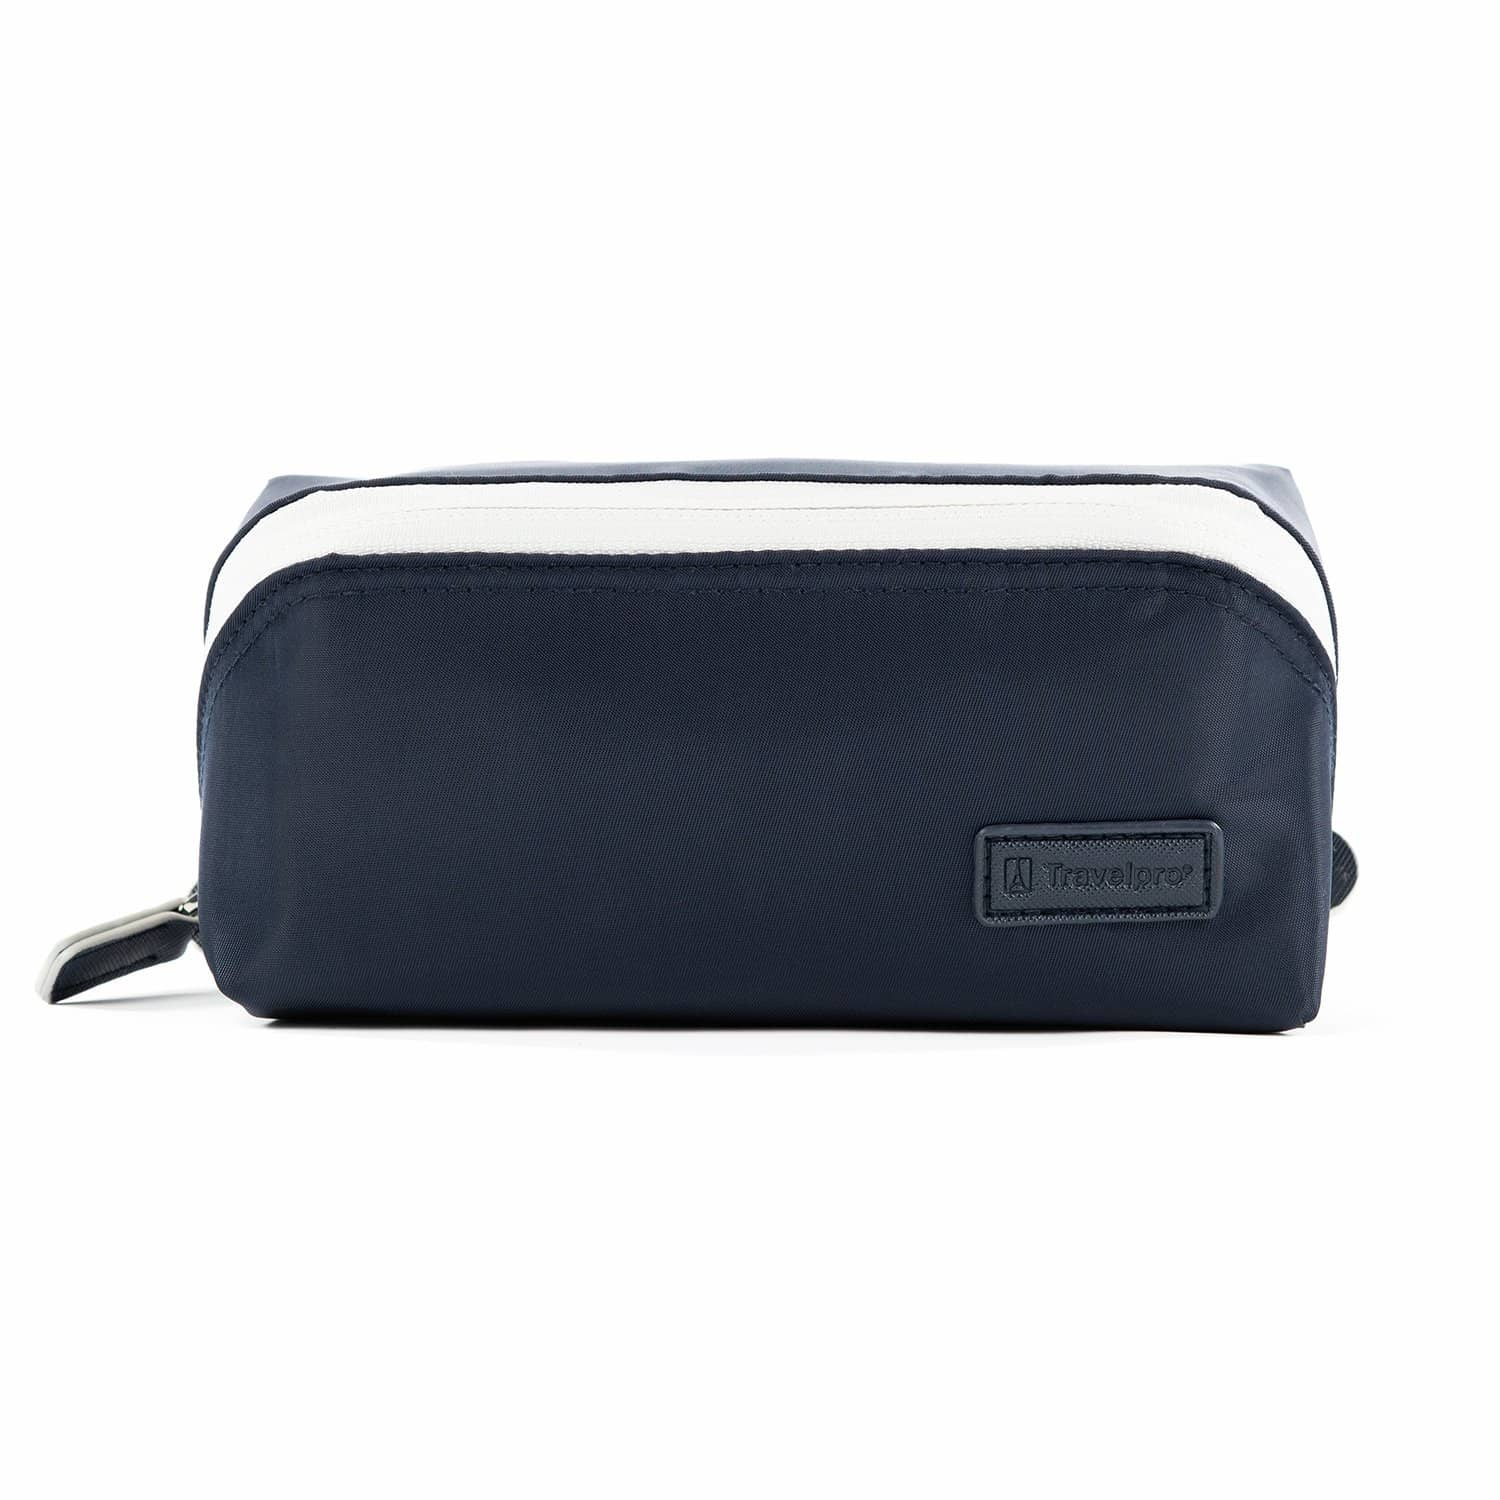 Travelpro Travelpro® Essentials™ Maxaccess Cubes™ Large Organizer NAVY